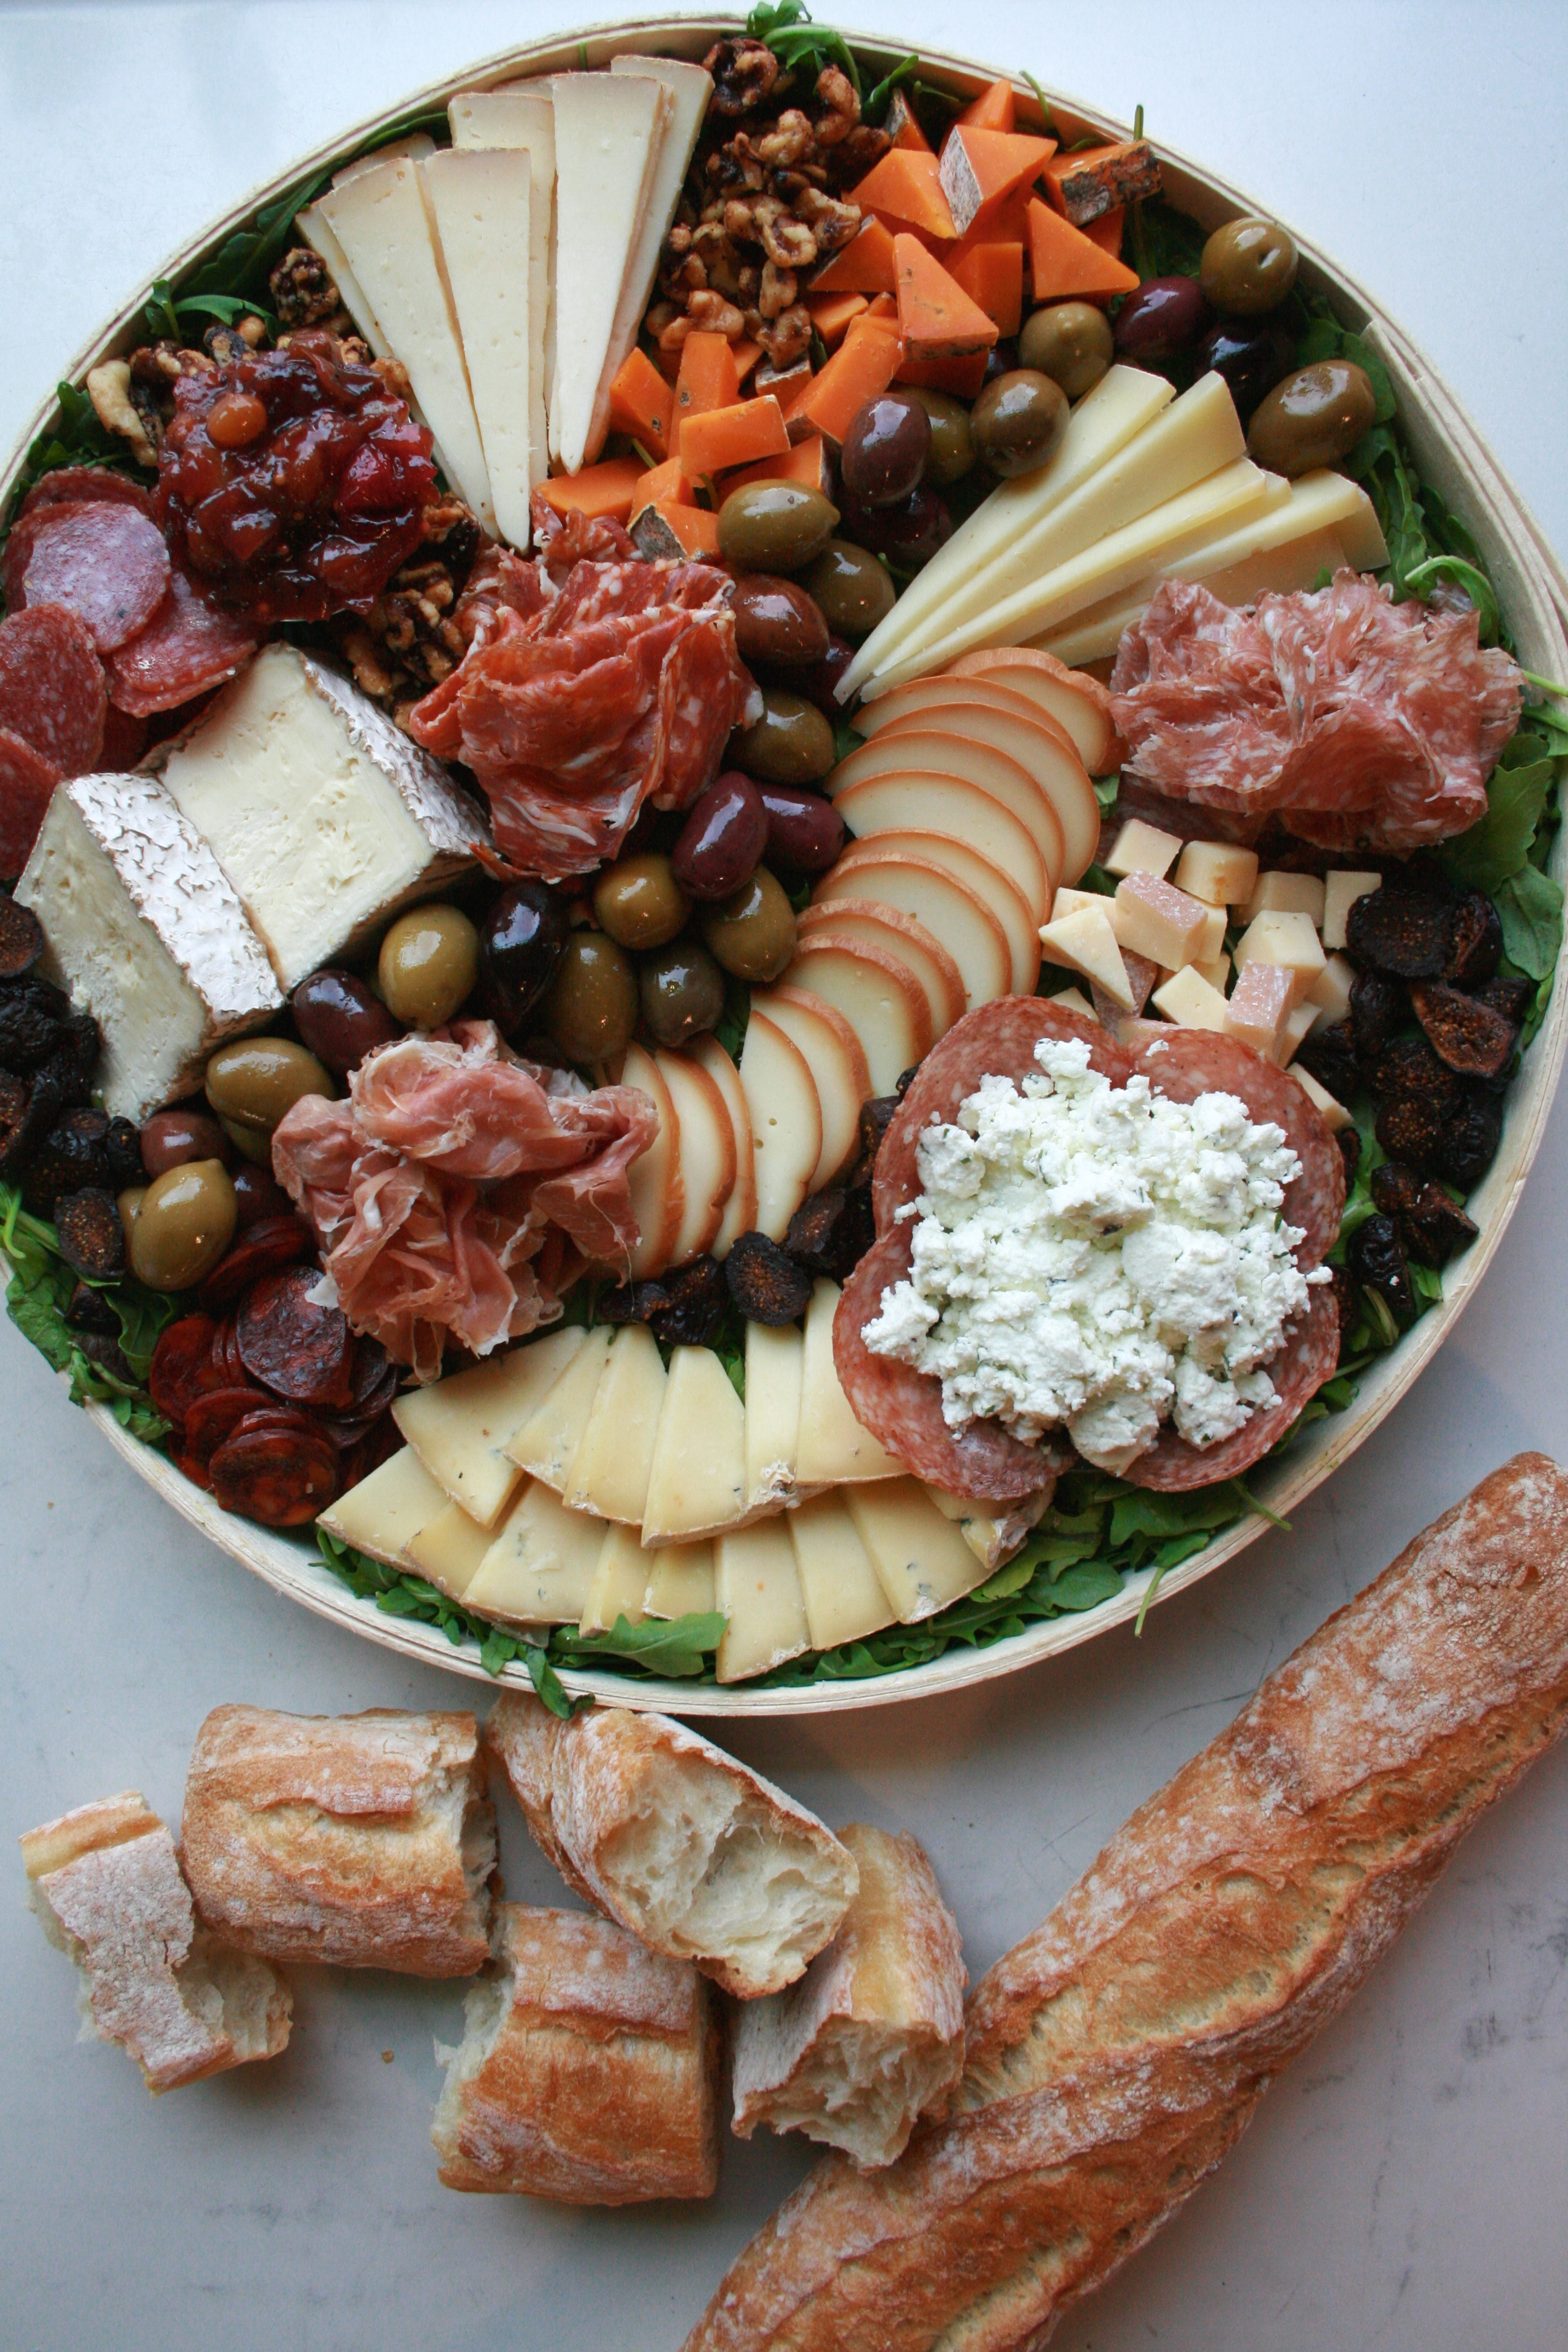 Cheese and Charcuterie Tray